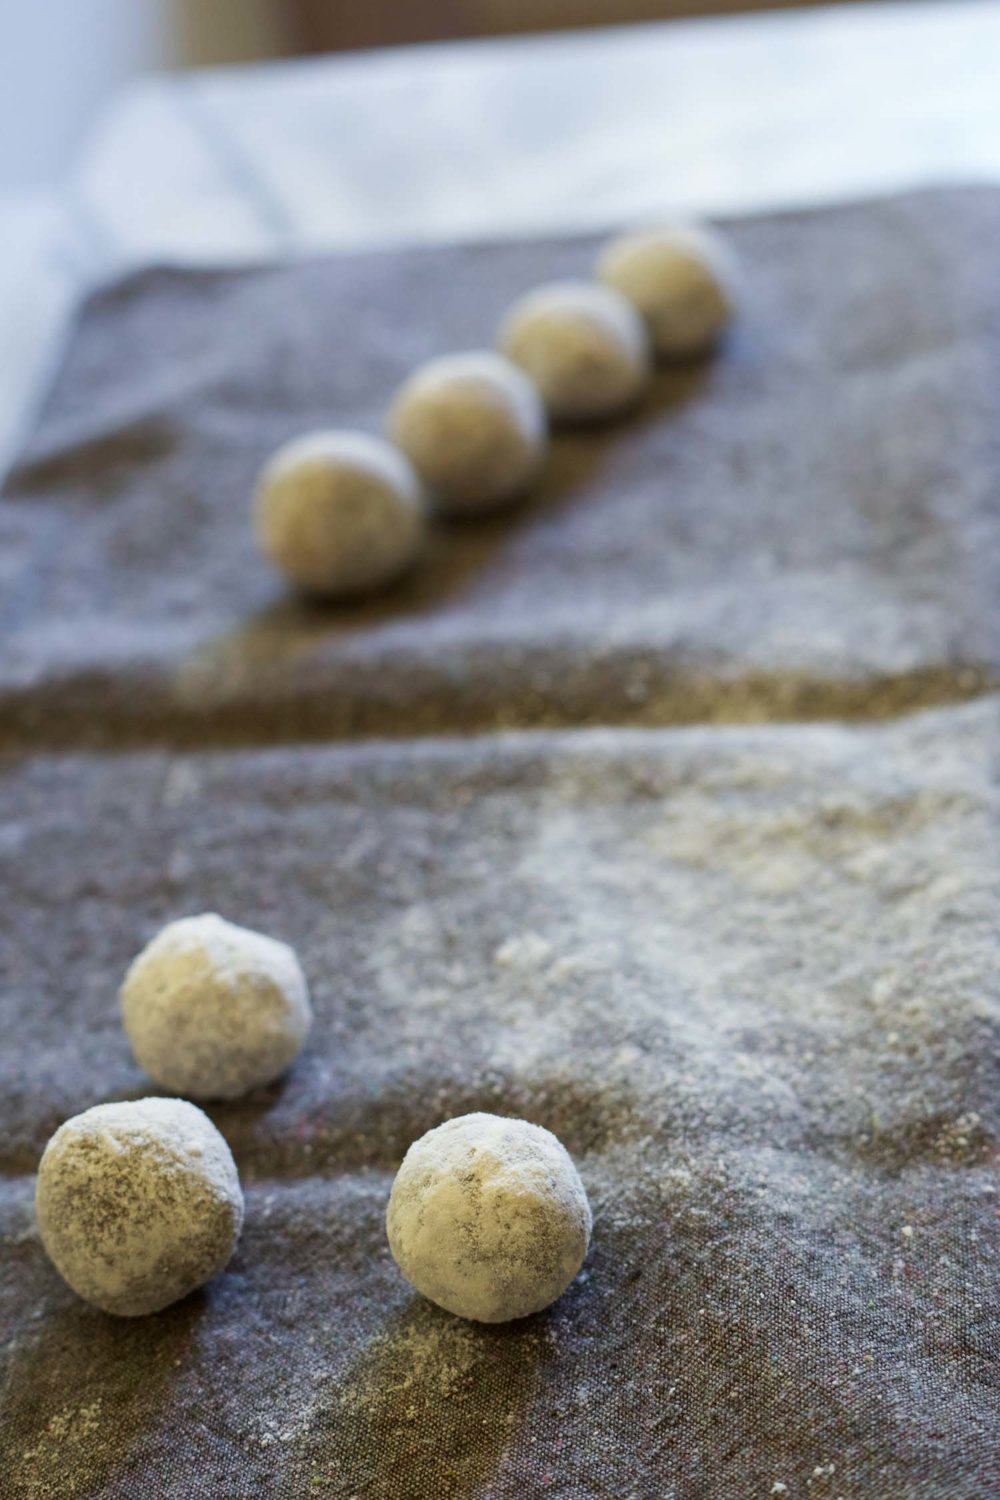 Roll the coconut flour-coated balls on a napkin or towel to create just a thin coat of flour. -